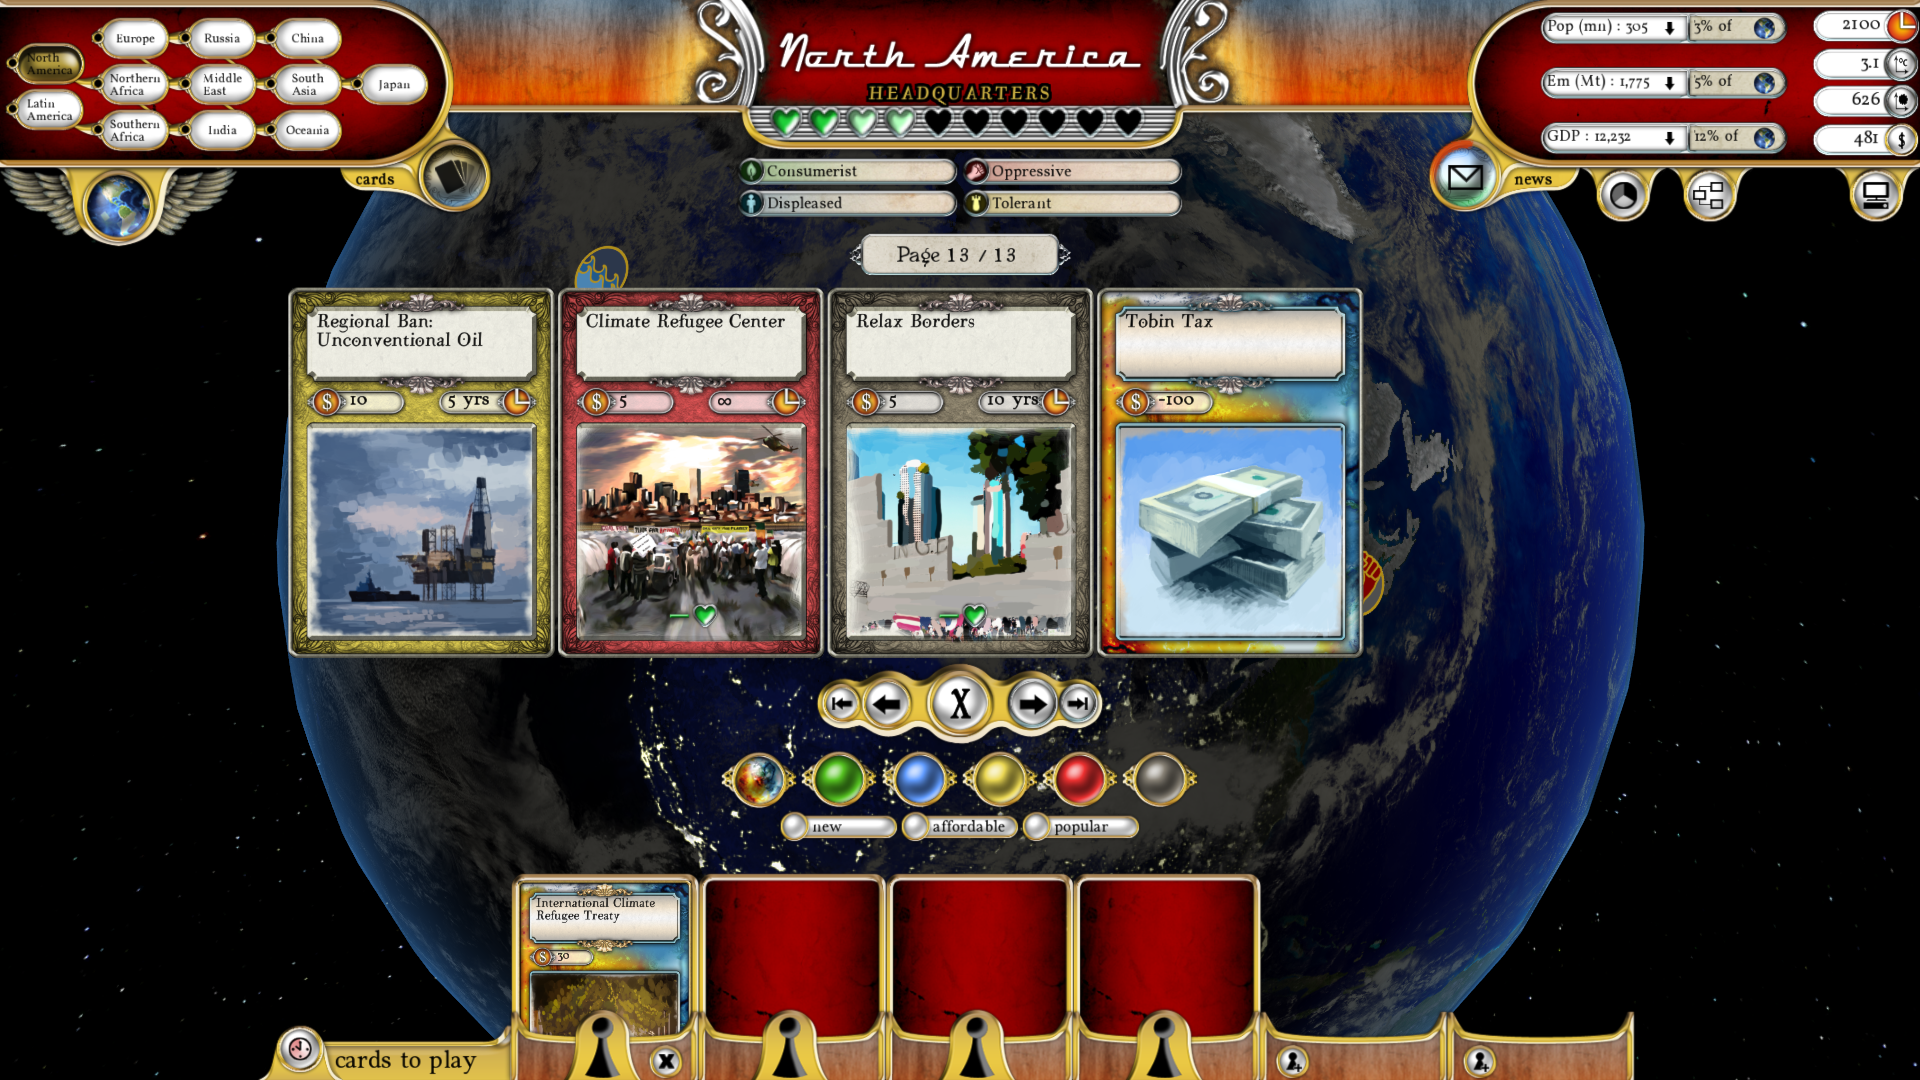 Fate of the World: Migration screenshot